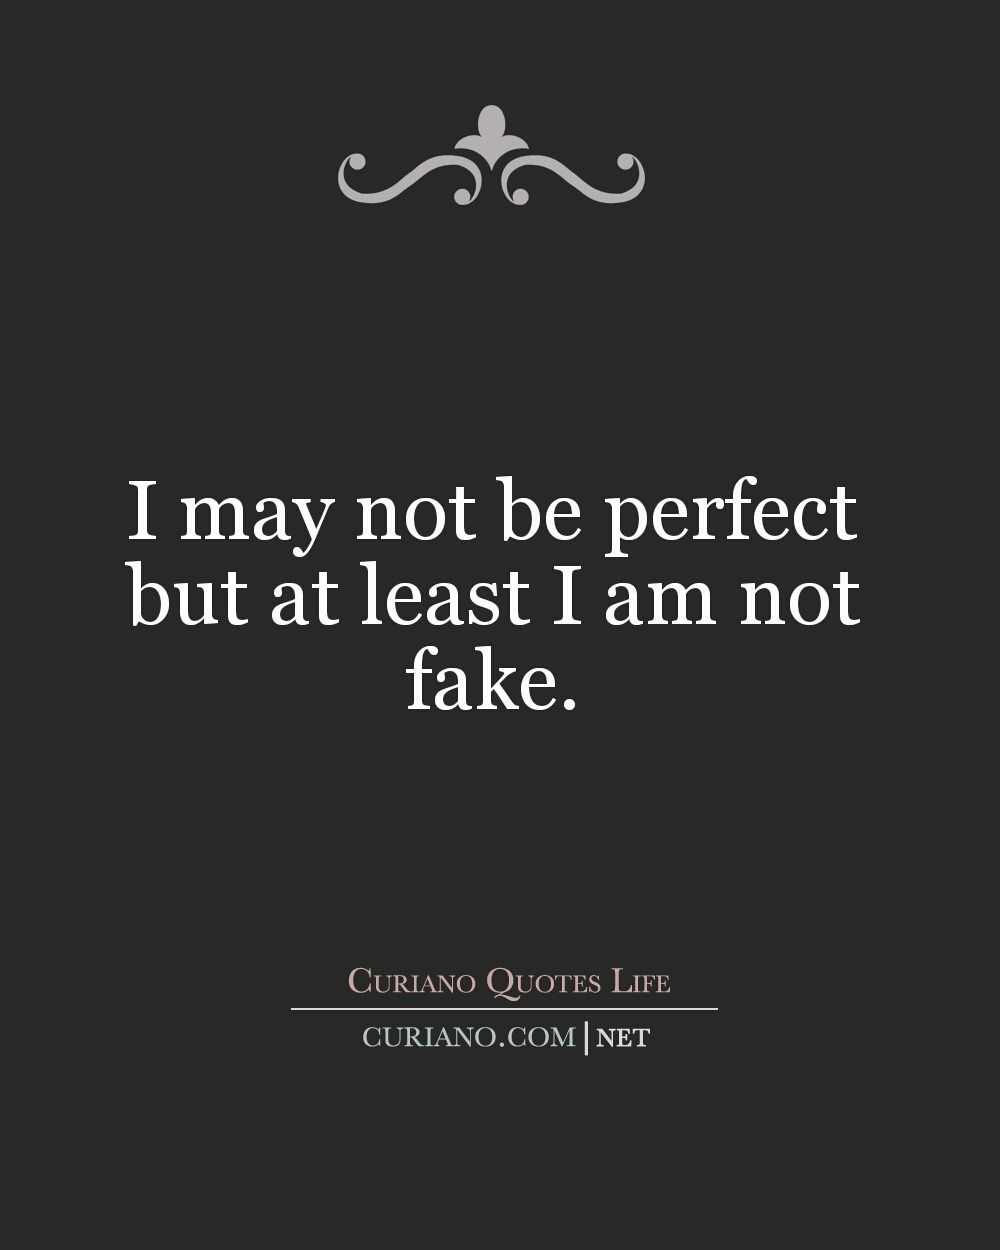 Favorite Quote About Life This Blog Curiano Quotes Life Shows Quotes Best Life Quote